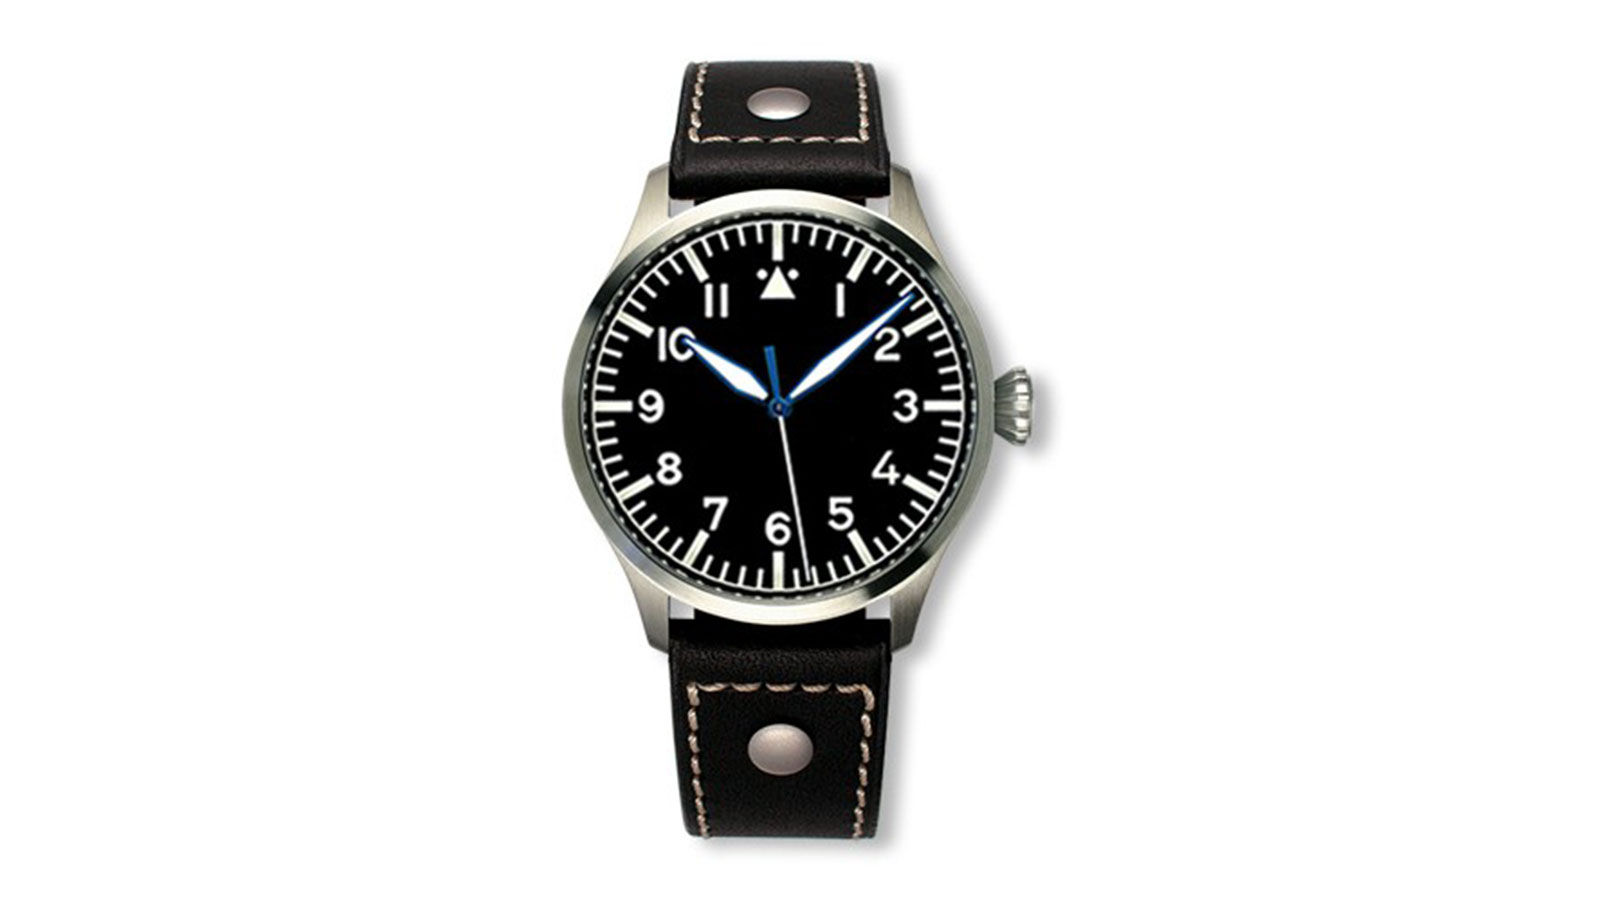 Archimede Pilot 39 Watch | the best pilot watches for men